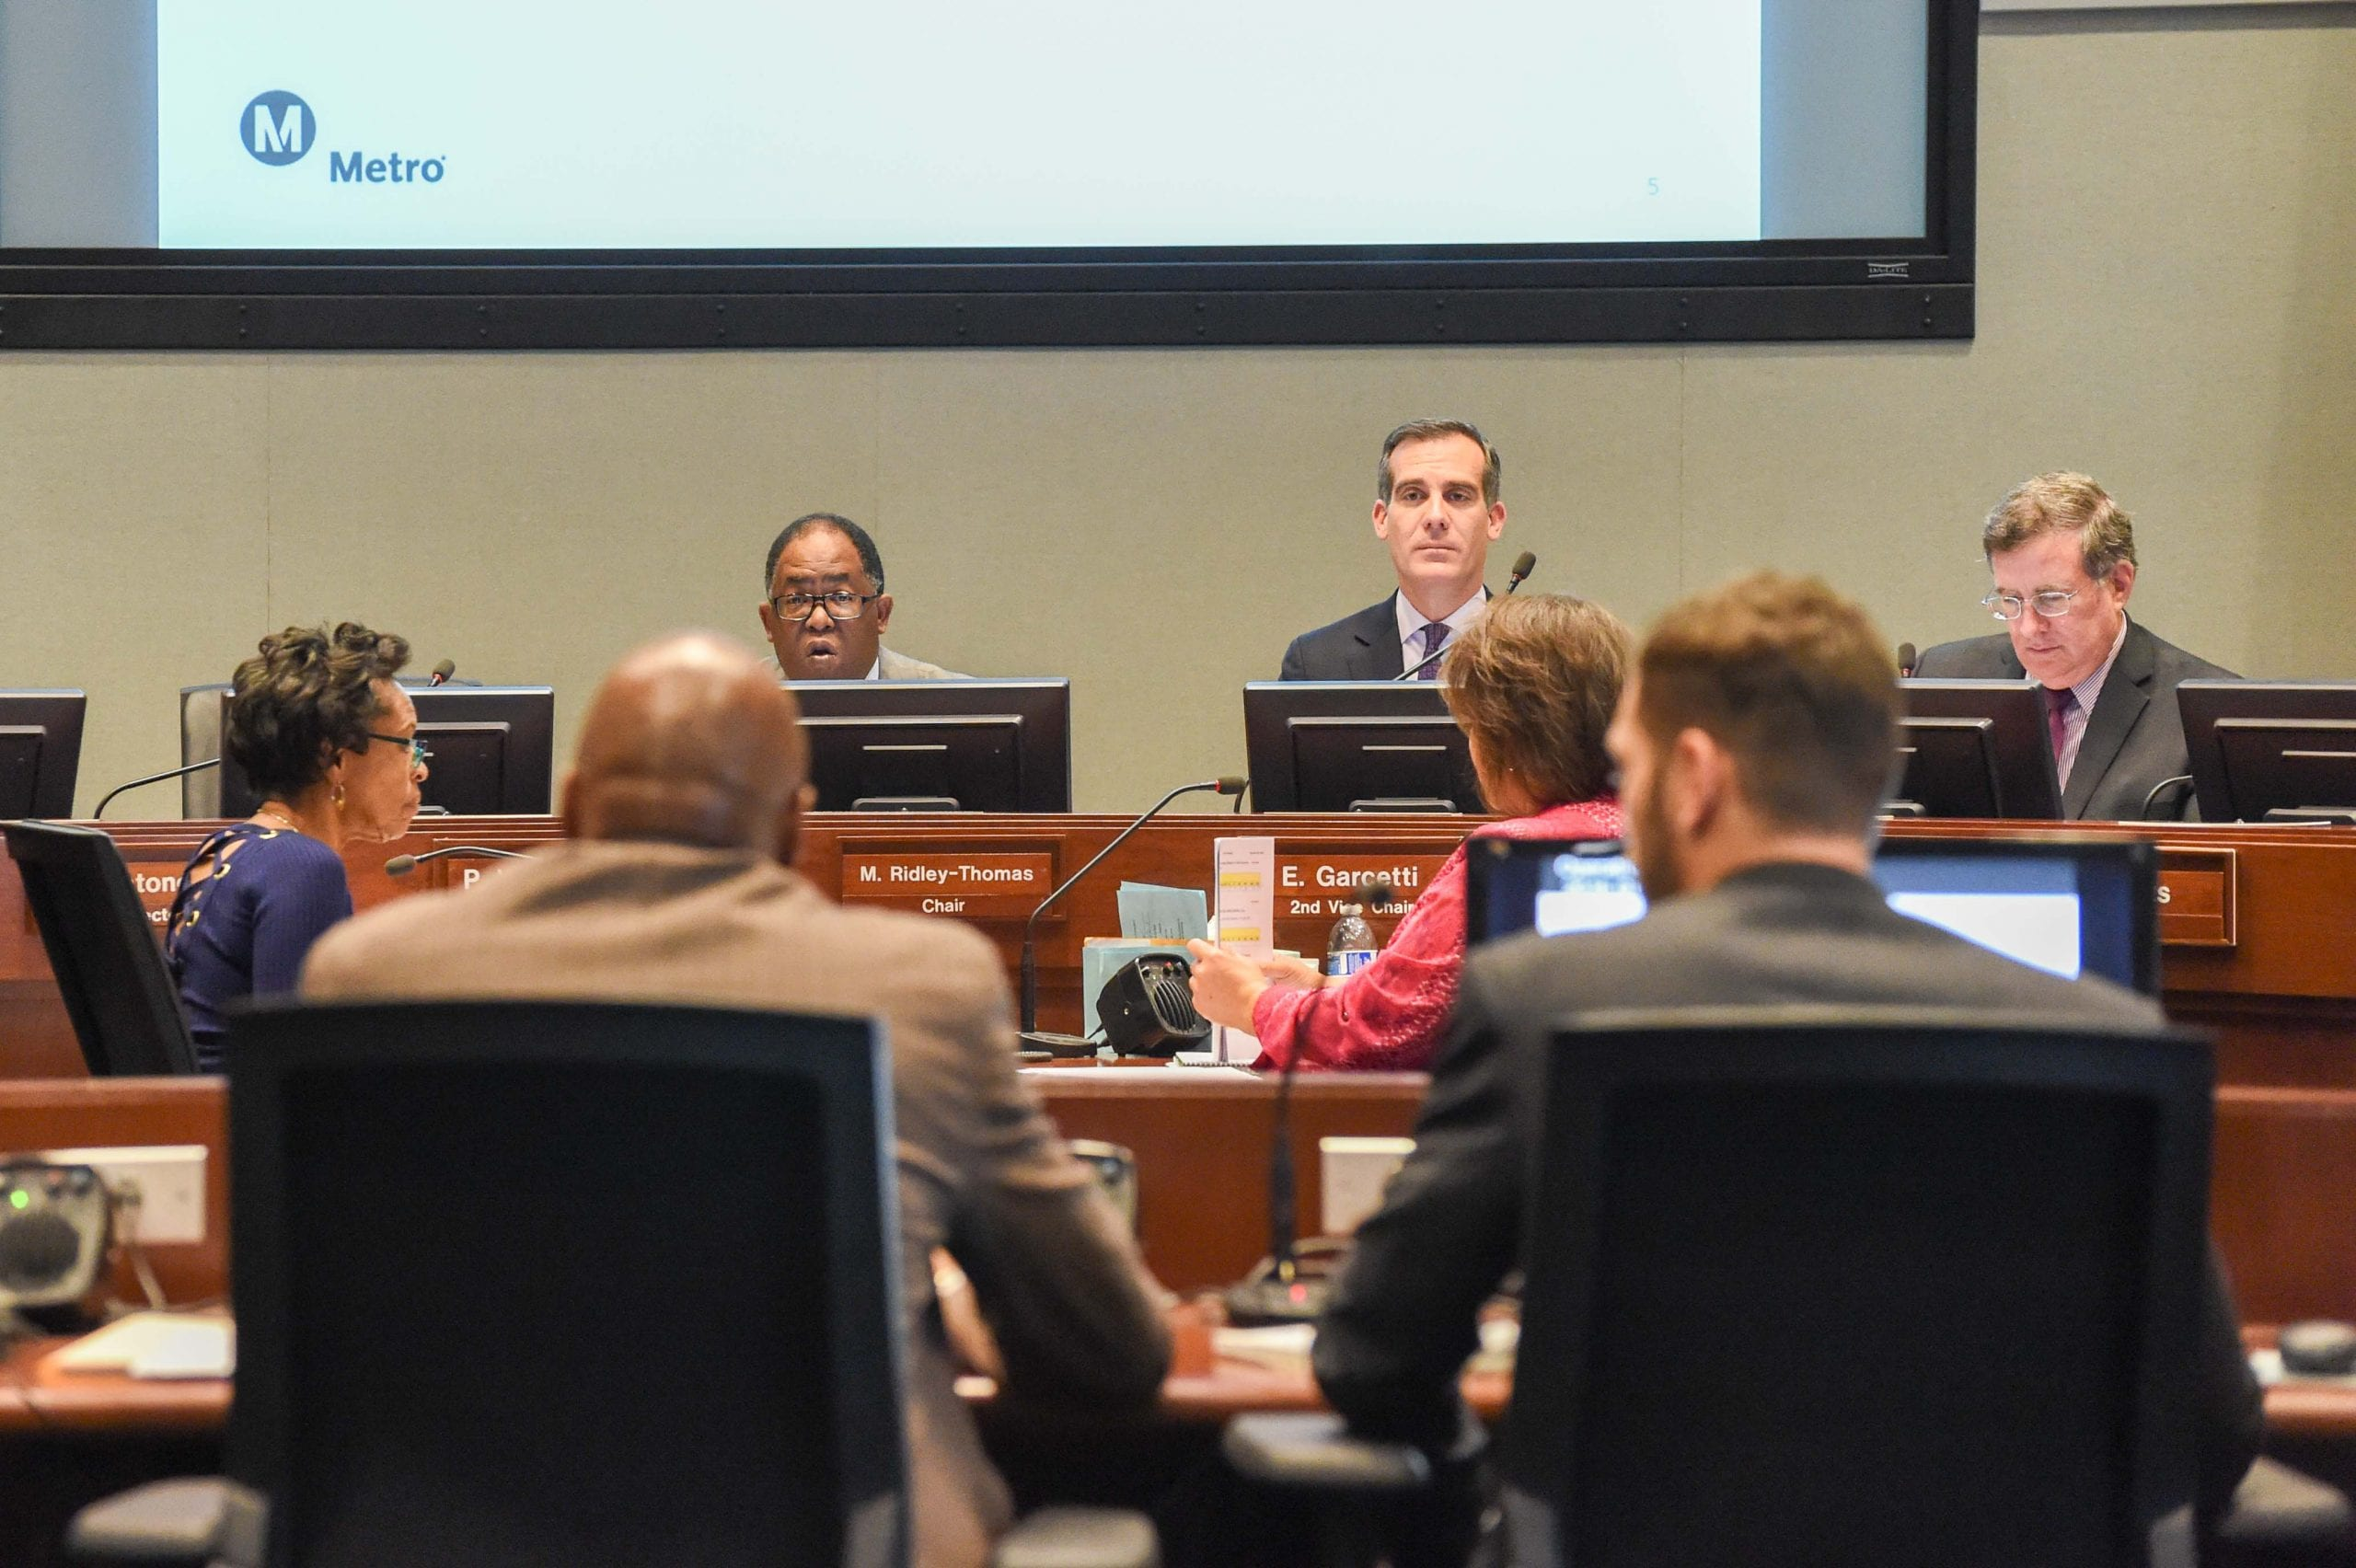 Metro Board Chair and Supervisor Mark Ridley-Thomas, left, and Board Member and L.A. Mayor Eric Garcetti listen to Washington's remarks on Thursday.